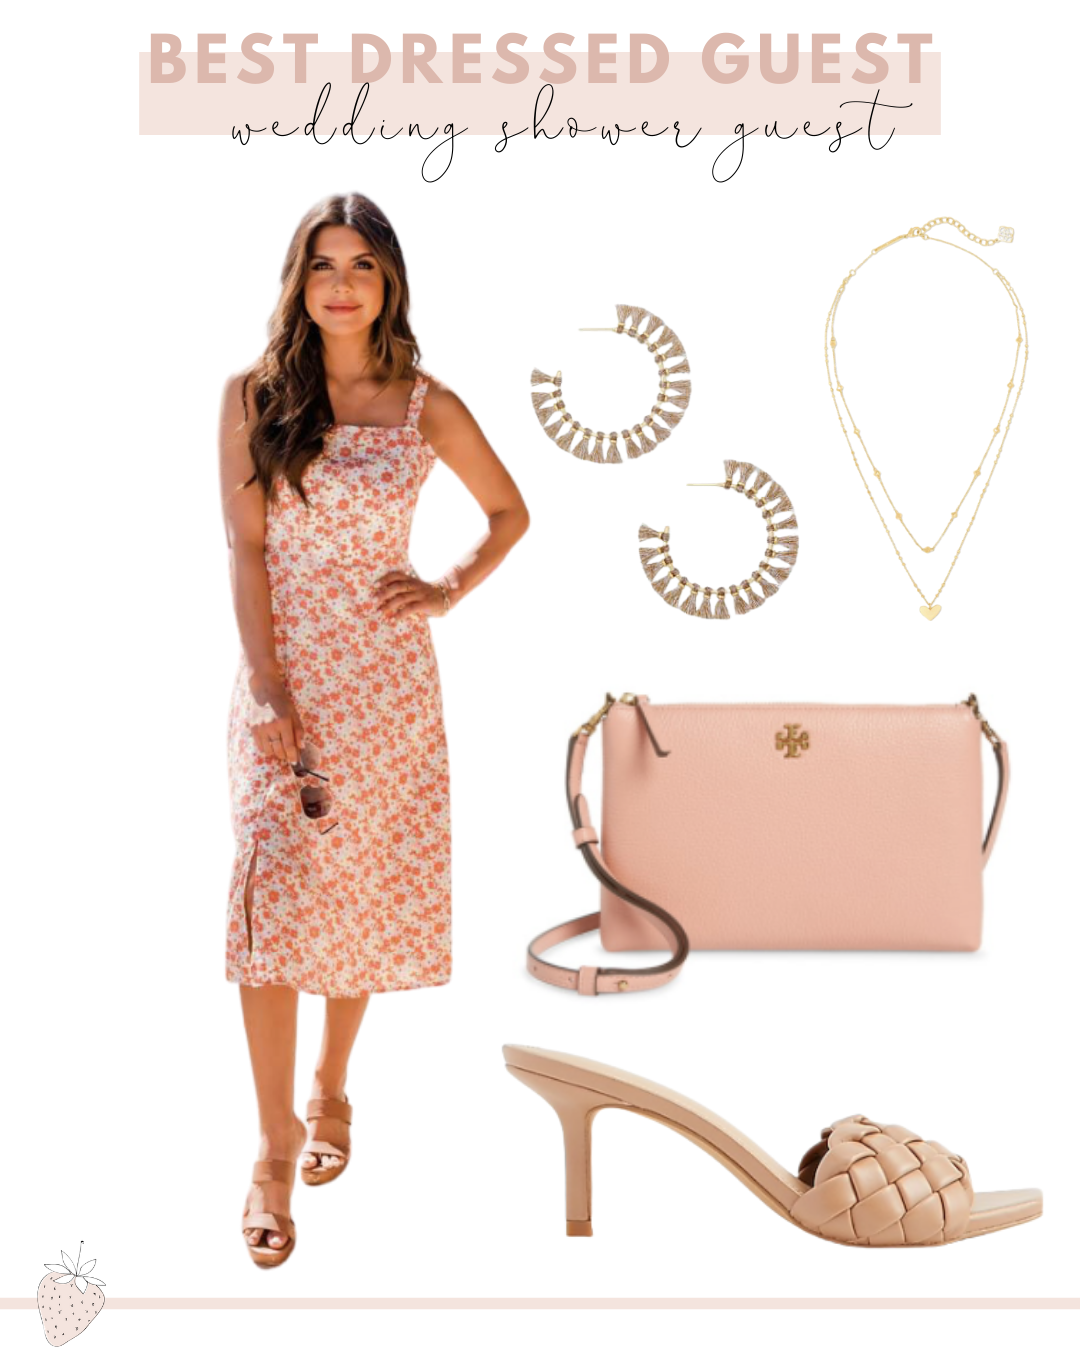 Best Dressed Guest Guide to Spring Events | spring wedding shower guest dress